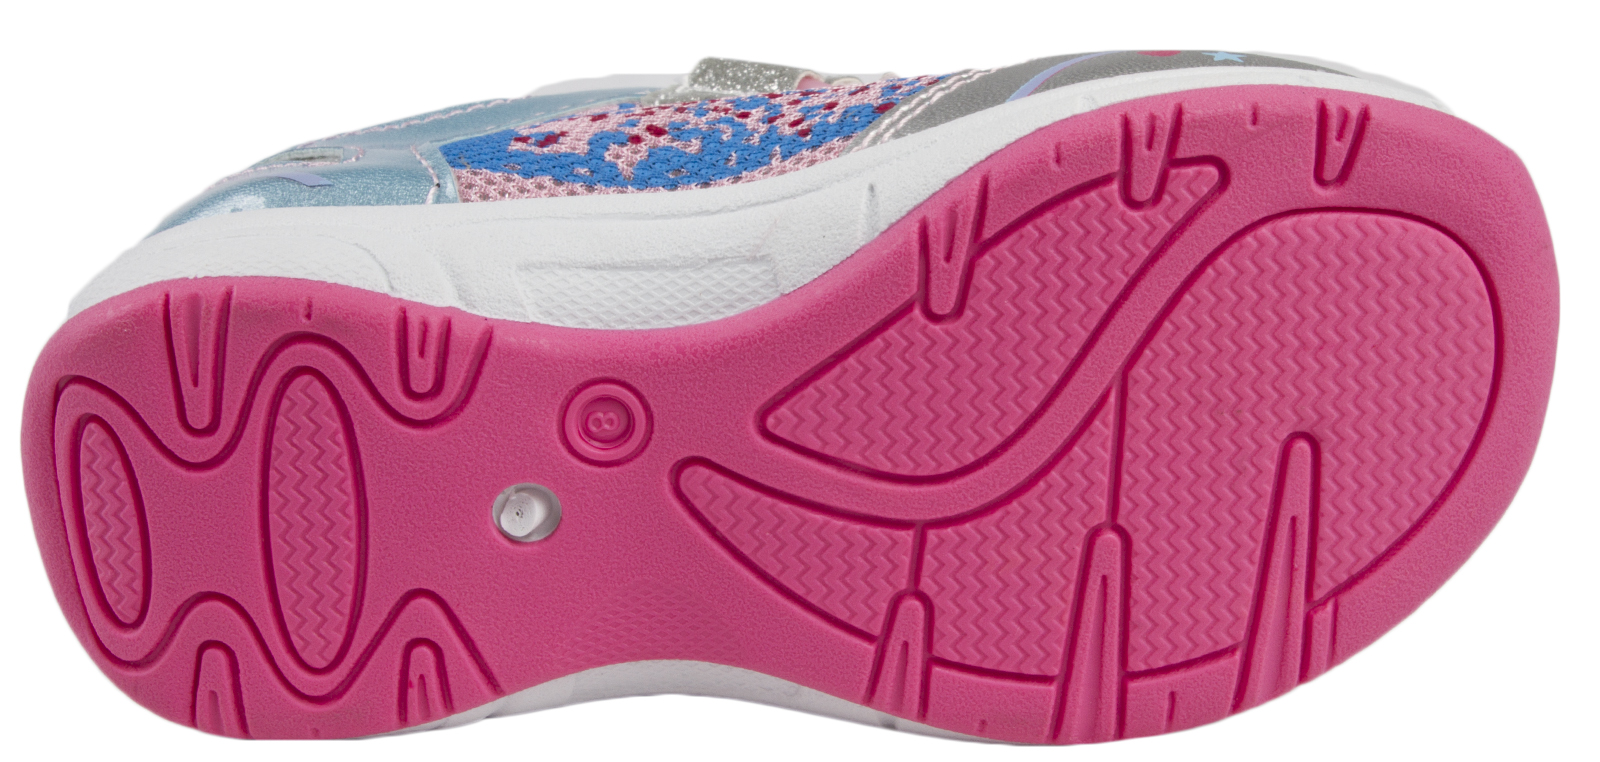 Girls My Little Pony Skate Trainers Glitter Pumps MLP Sports Shoes  Kids Size